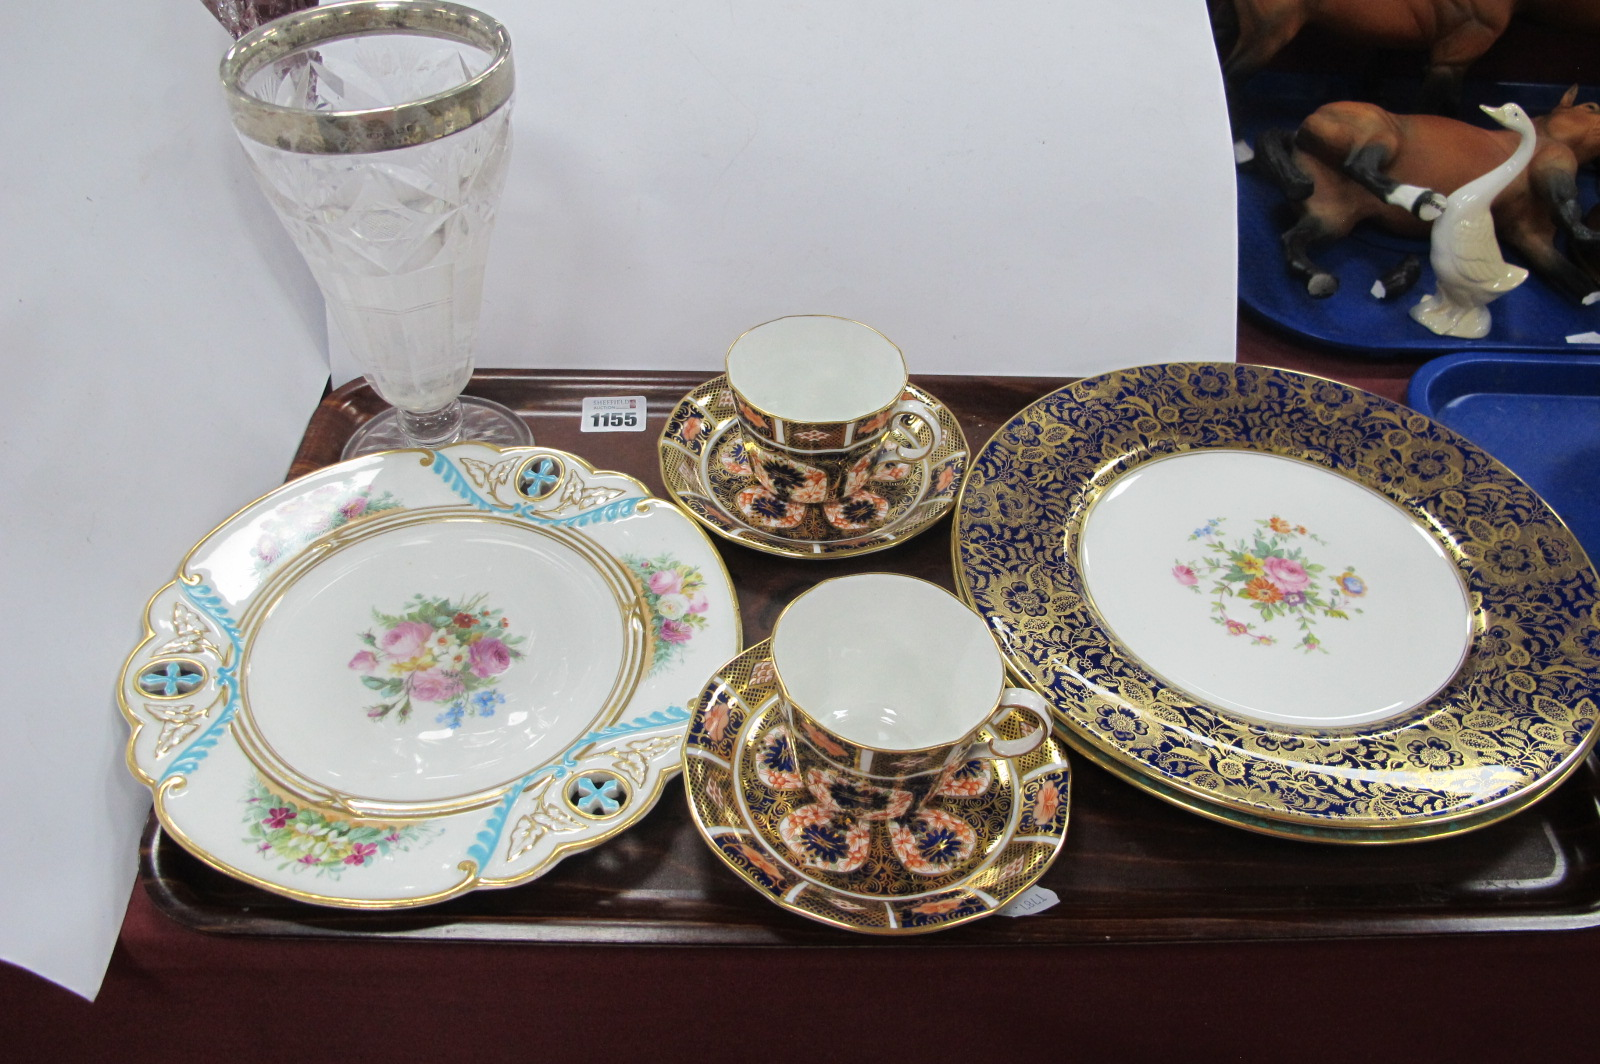 Two Royal Crown Derby 'Old Imari Japan' pattern 1128, two Minton floral cabinet plates, a further